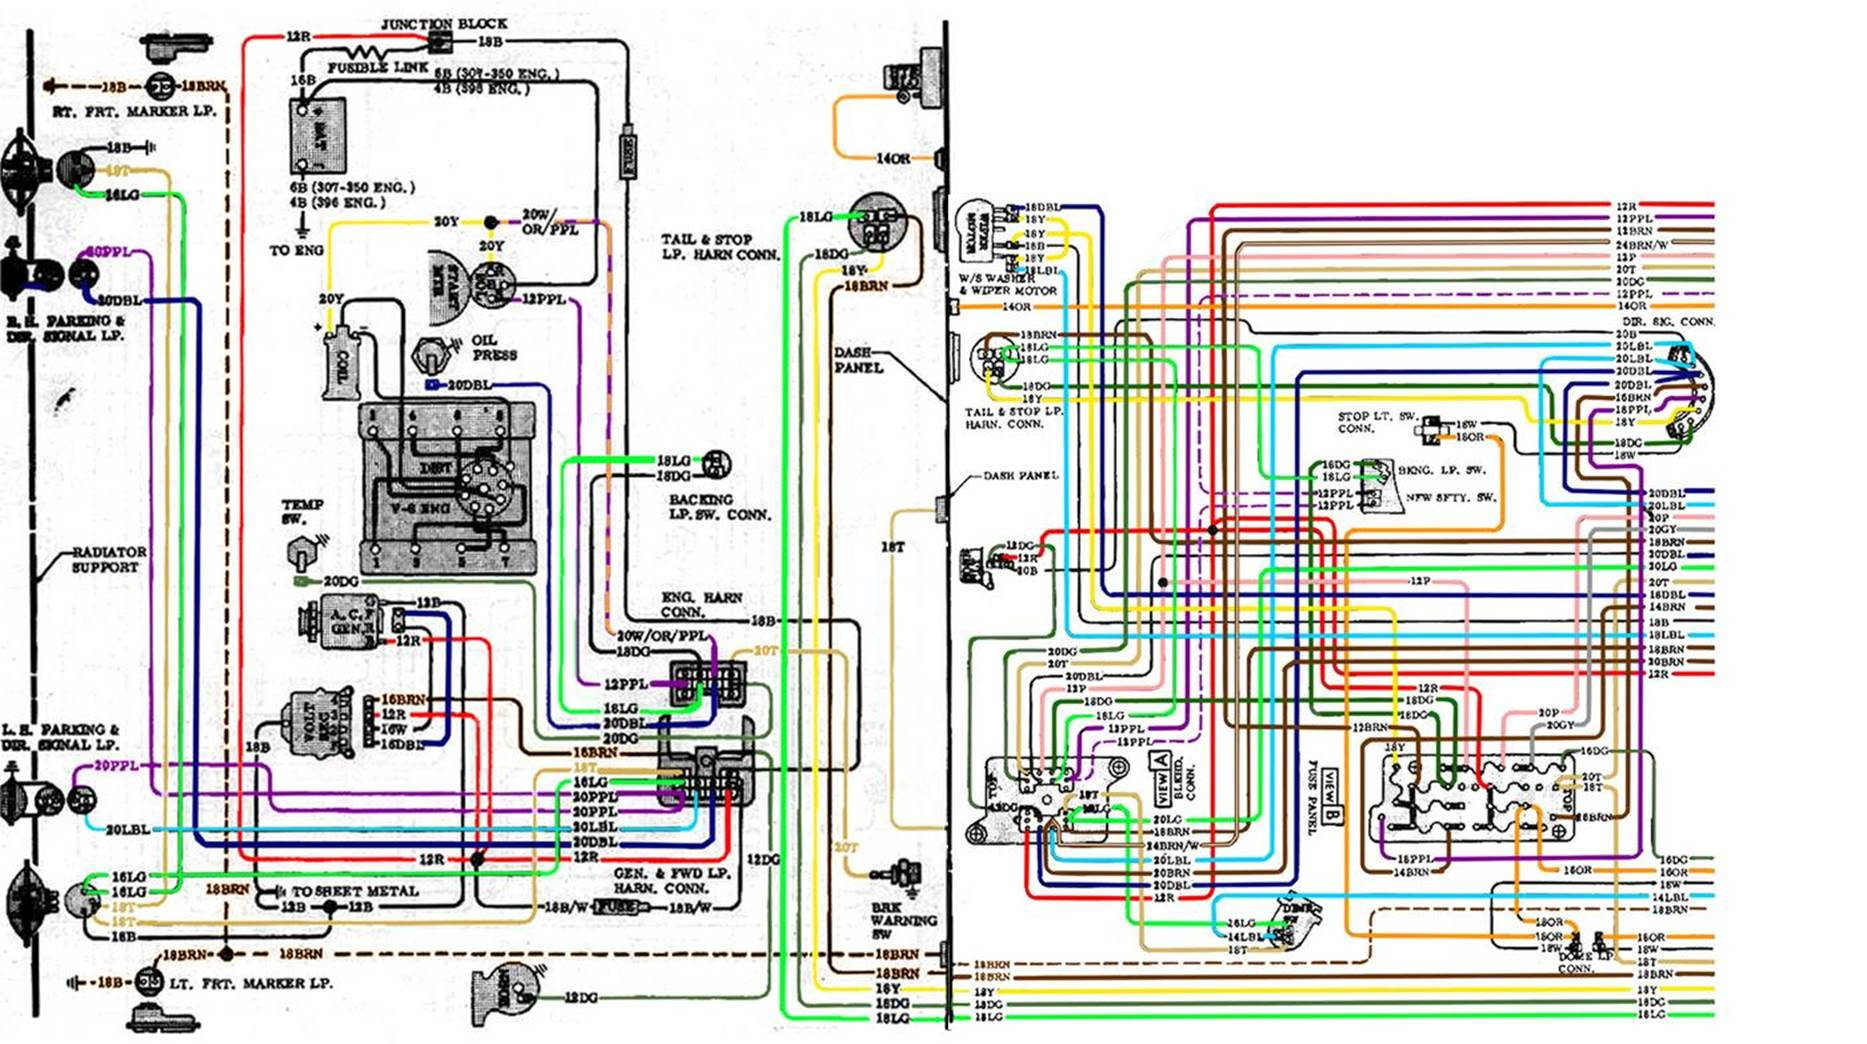 image002 67 72 chevy wiring diagram GM Headlight Wiring Harness at fashall.co